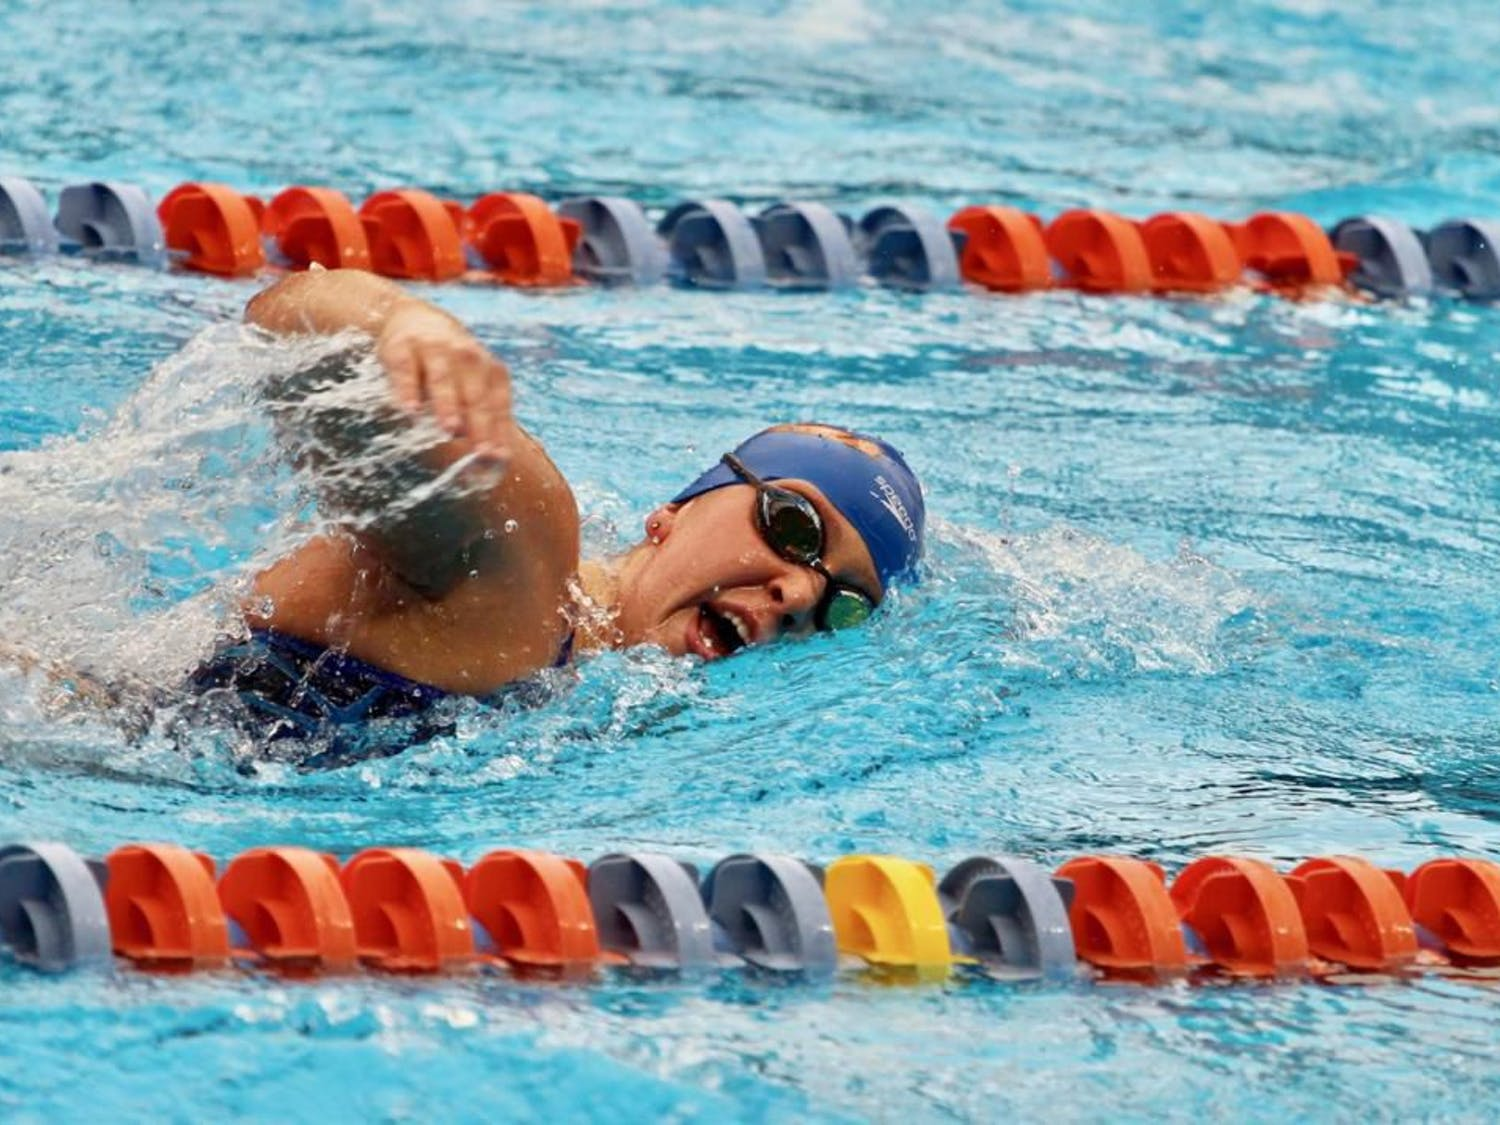 Florida sophomore Taylor Ault notched two second-place finishes in both the 500 free (4:48.38) and the 1,650 free (16:29.57) in her last meet.